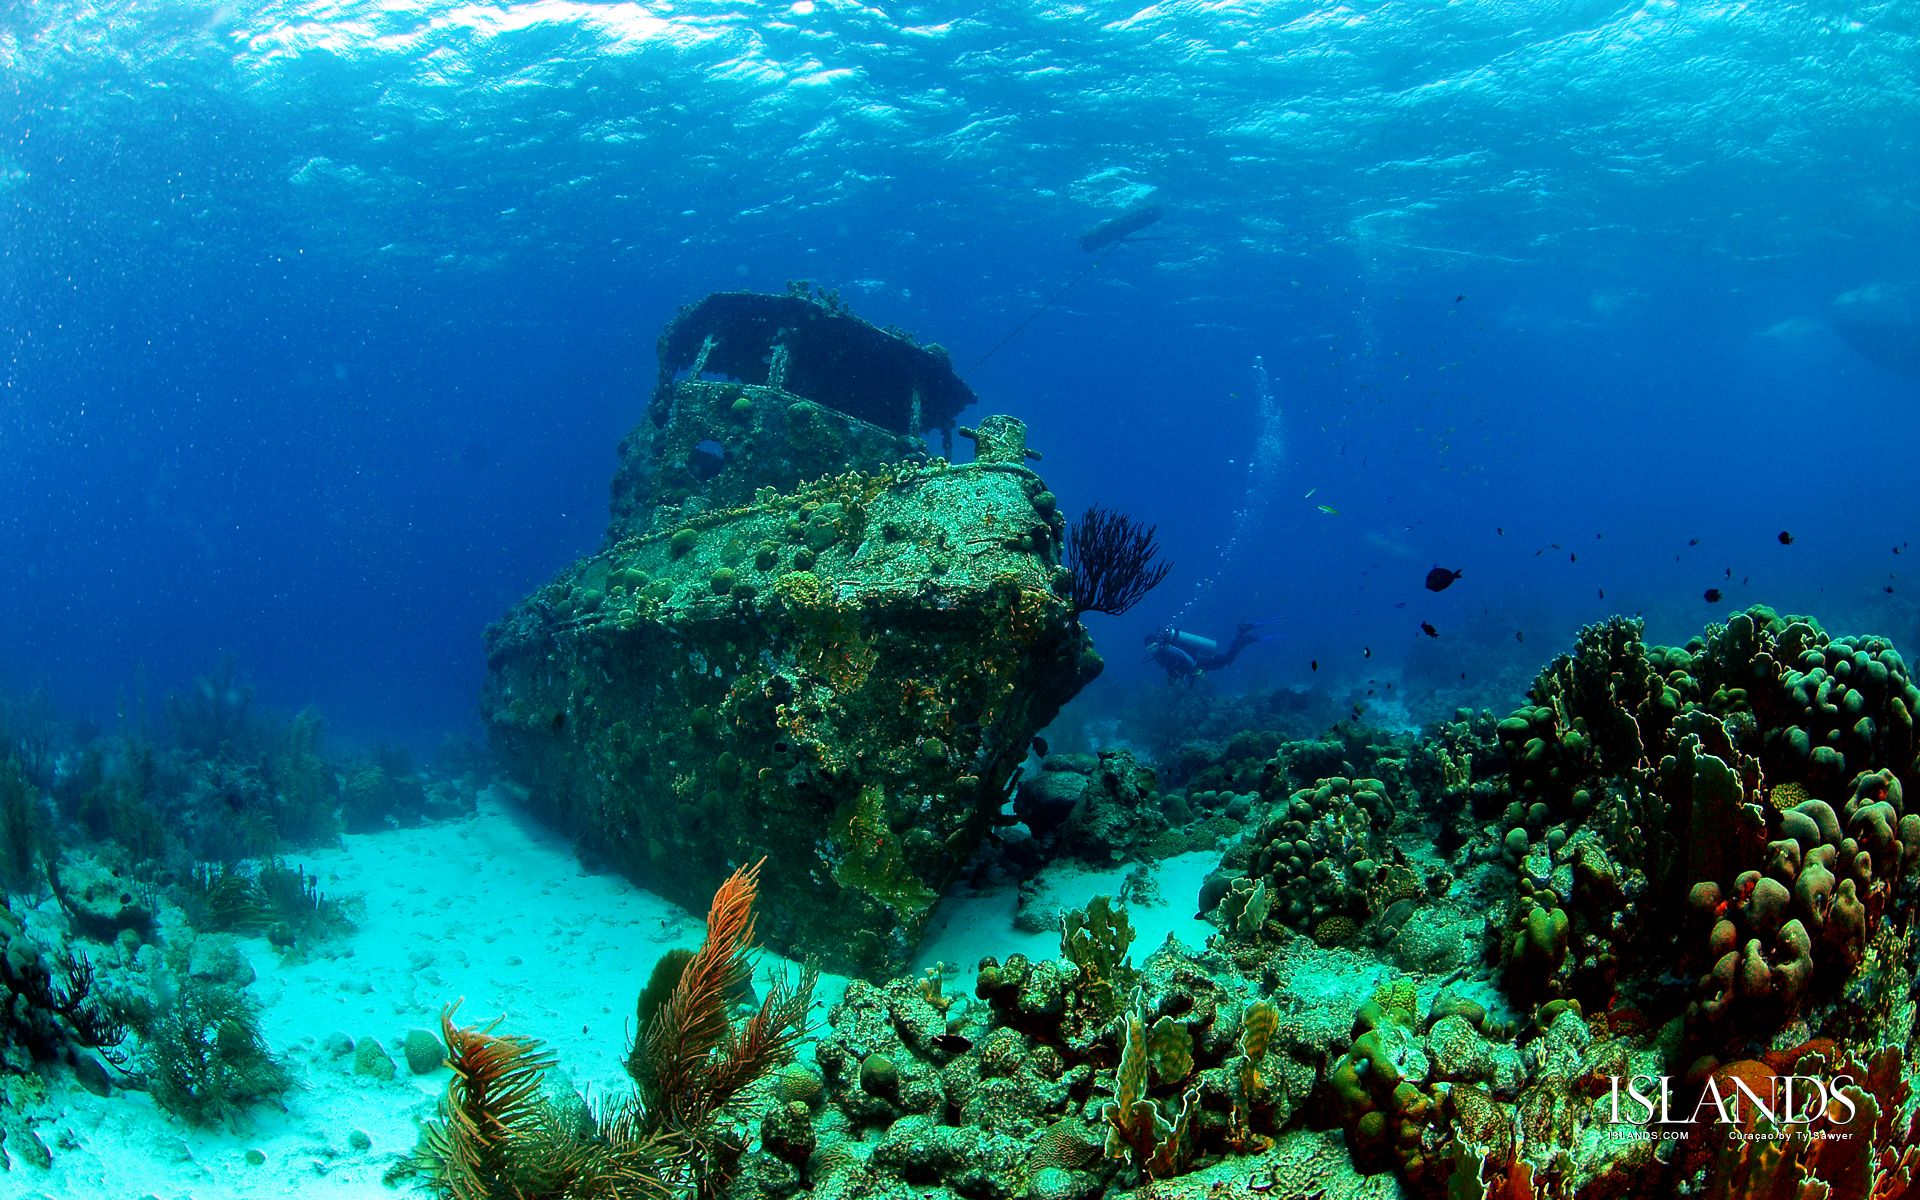 Caribbean Diving: Caribbean, Ship Wreck And Adventure Awaits